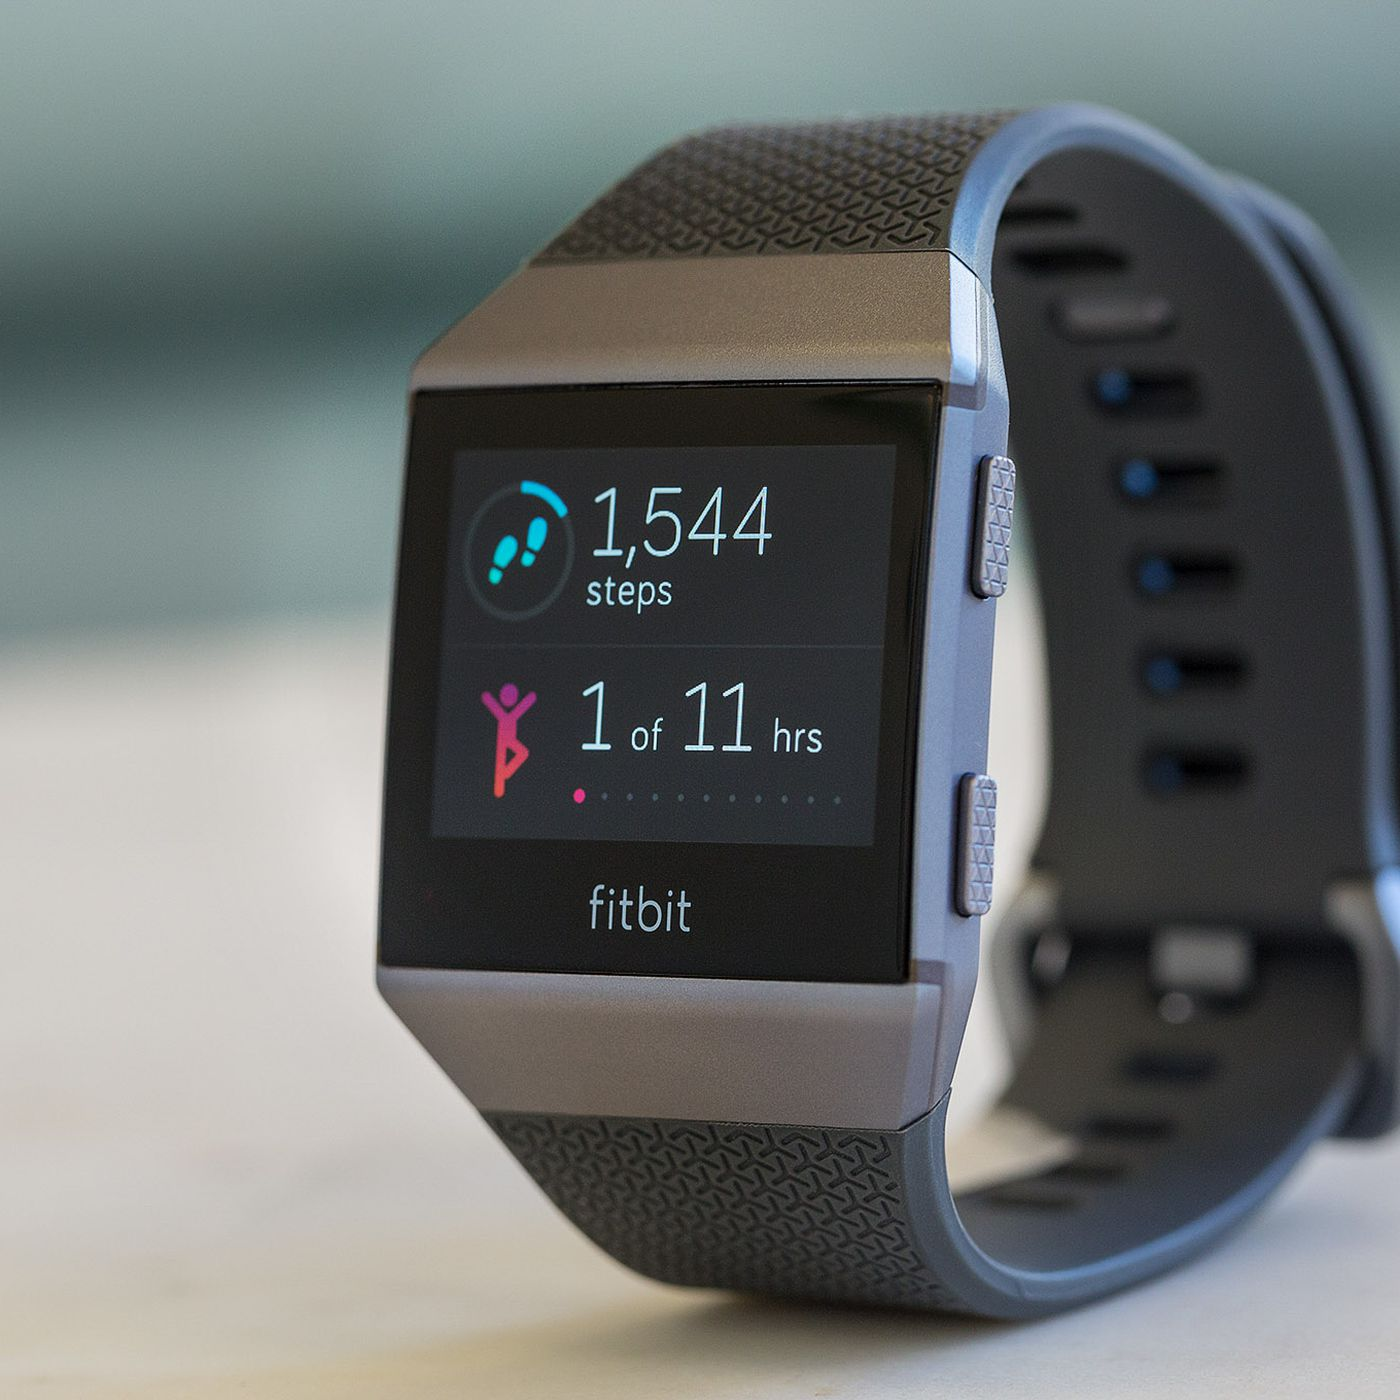 Fitbit just acquired a cloud-based health care company that